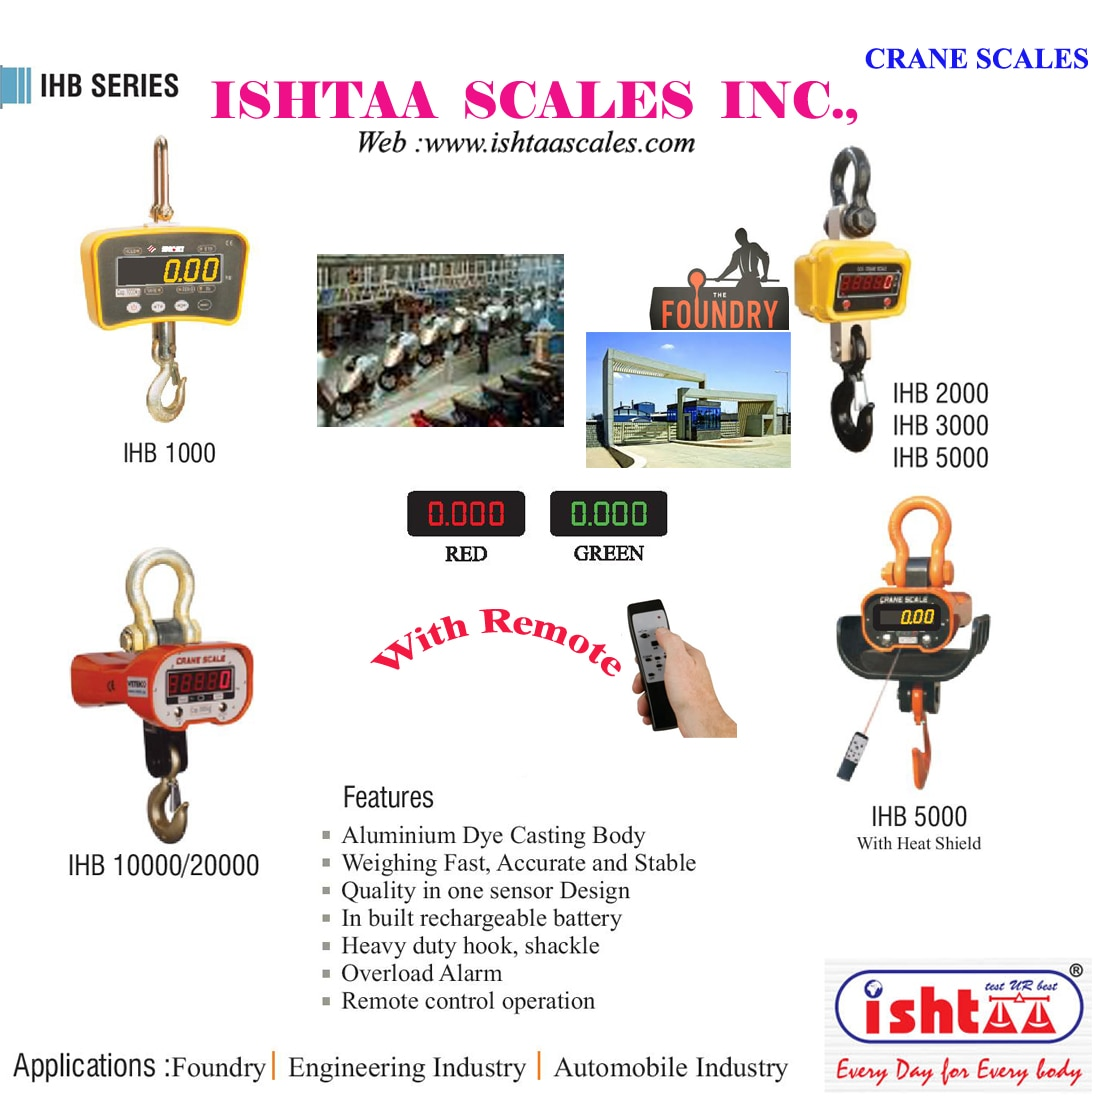 Best Heavy weight Weighing Scales http://goo.gl/K6zB9r Ishtaa - Crane Scales - IHB Series  Cranes Scales at Economic Price Very High Accuracy Best Performance Weighing Scales Best Industrial Weighing Scales Weighing Scales for Foundries,  Weighing Scales for Heavy Machinery  Weighing Scales for Heat Treatments Weighing scale for Automobile Industry Available from 1 Ton to 20 Tonnes. Easily Portable, High Speed Processing..  Buy Now @ Ishtaa Coimbatore. Ring us: 09843016028. Mail: online@ishtaascales.com